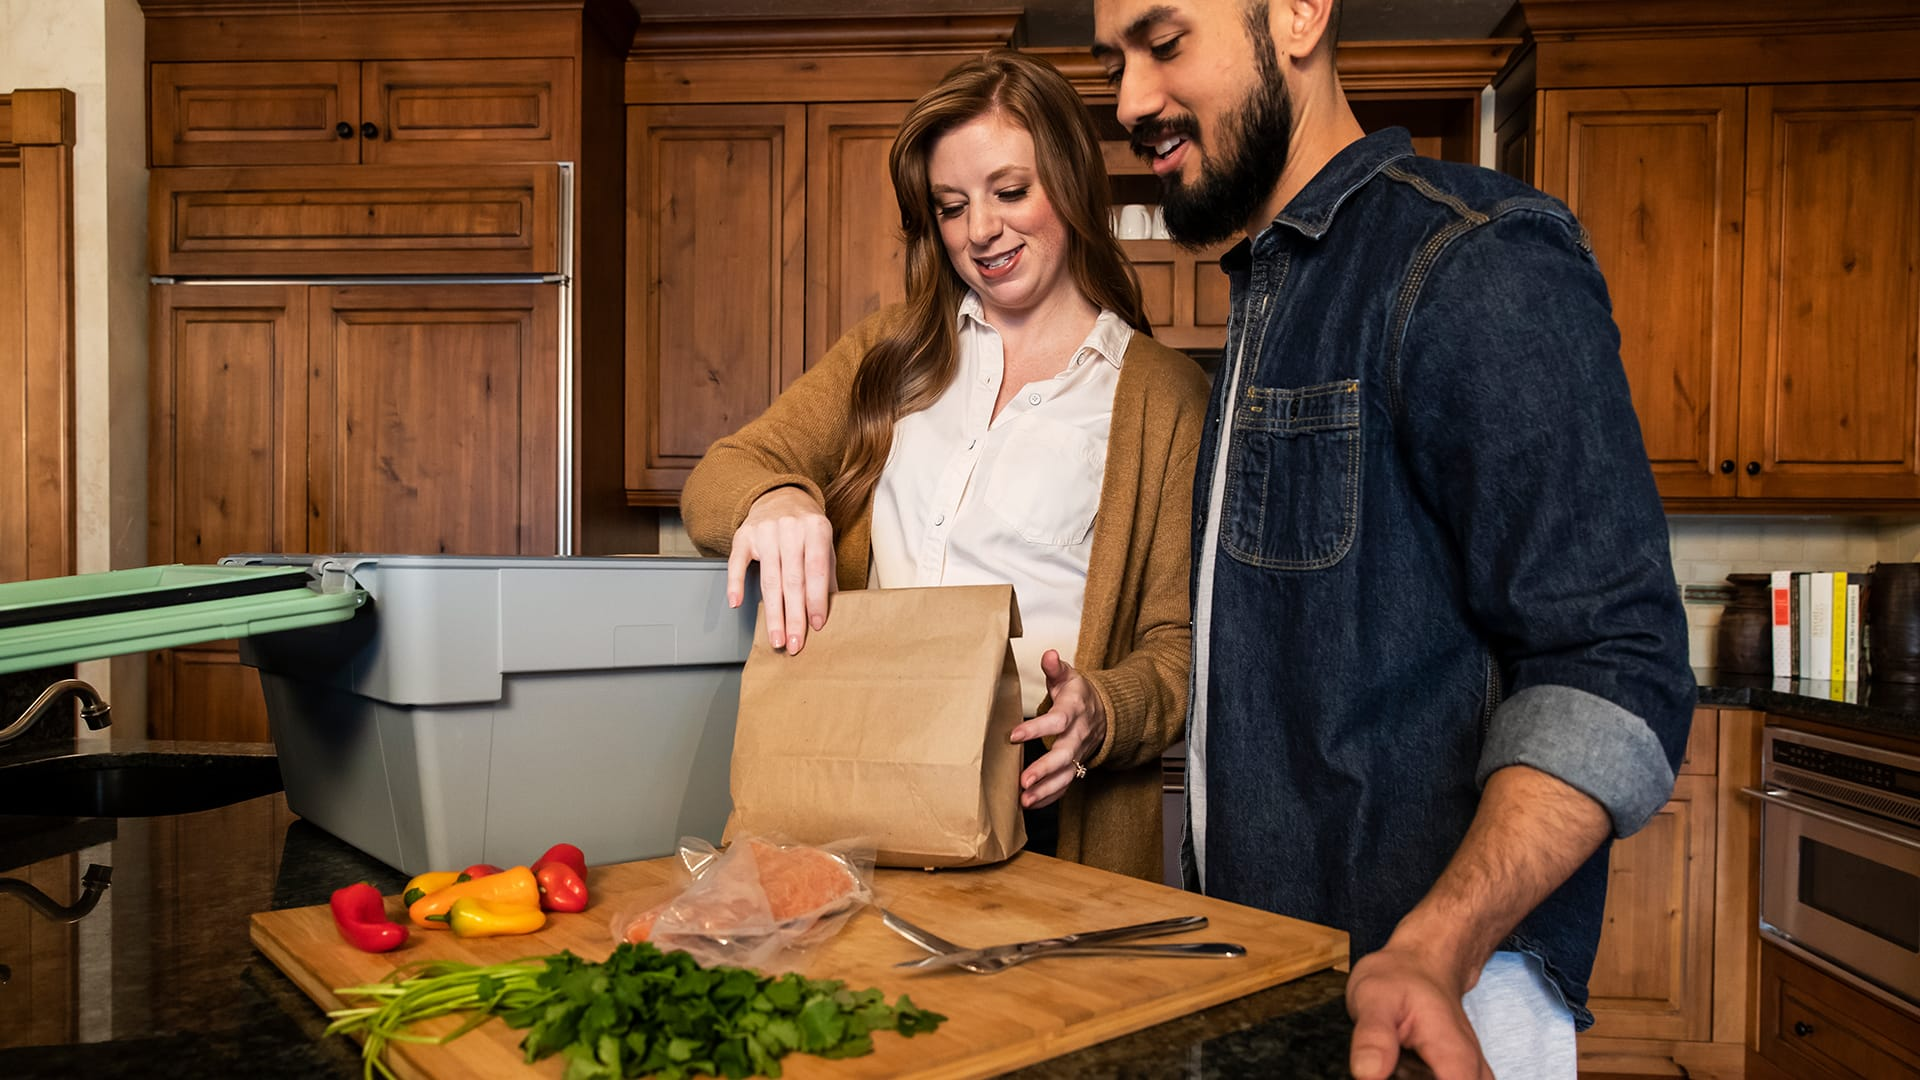 meal kit consumers taking their perishables out of reusable Liviri Fresh packaging